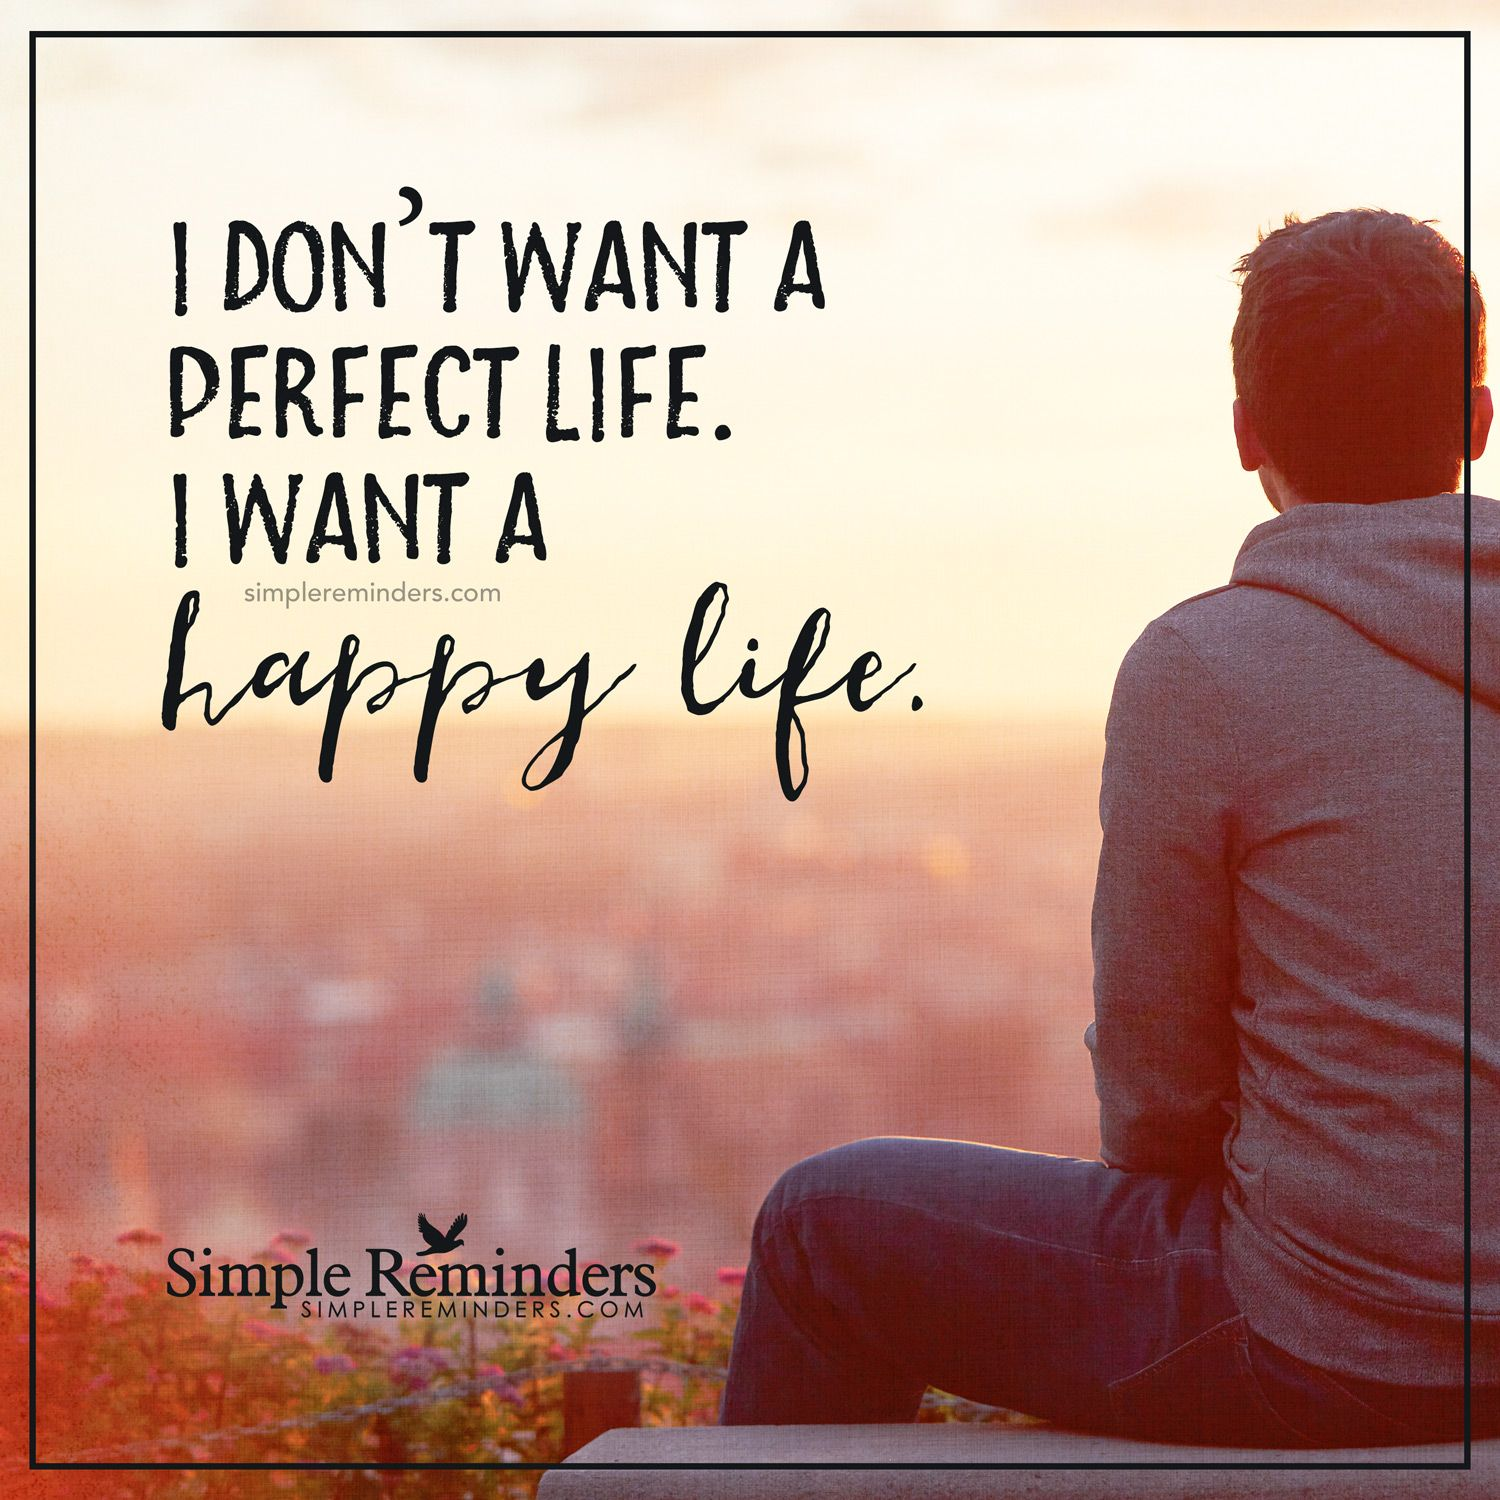 Wisdom Quotes About Life And Happiness I Want A Happy Life I Don't Want A Perfect Lifei Want A Happy